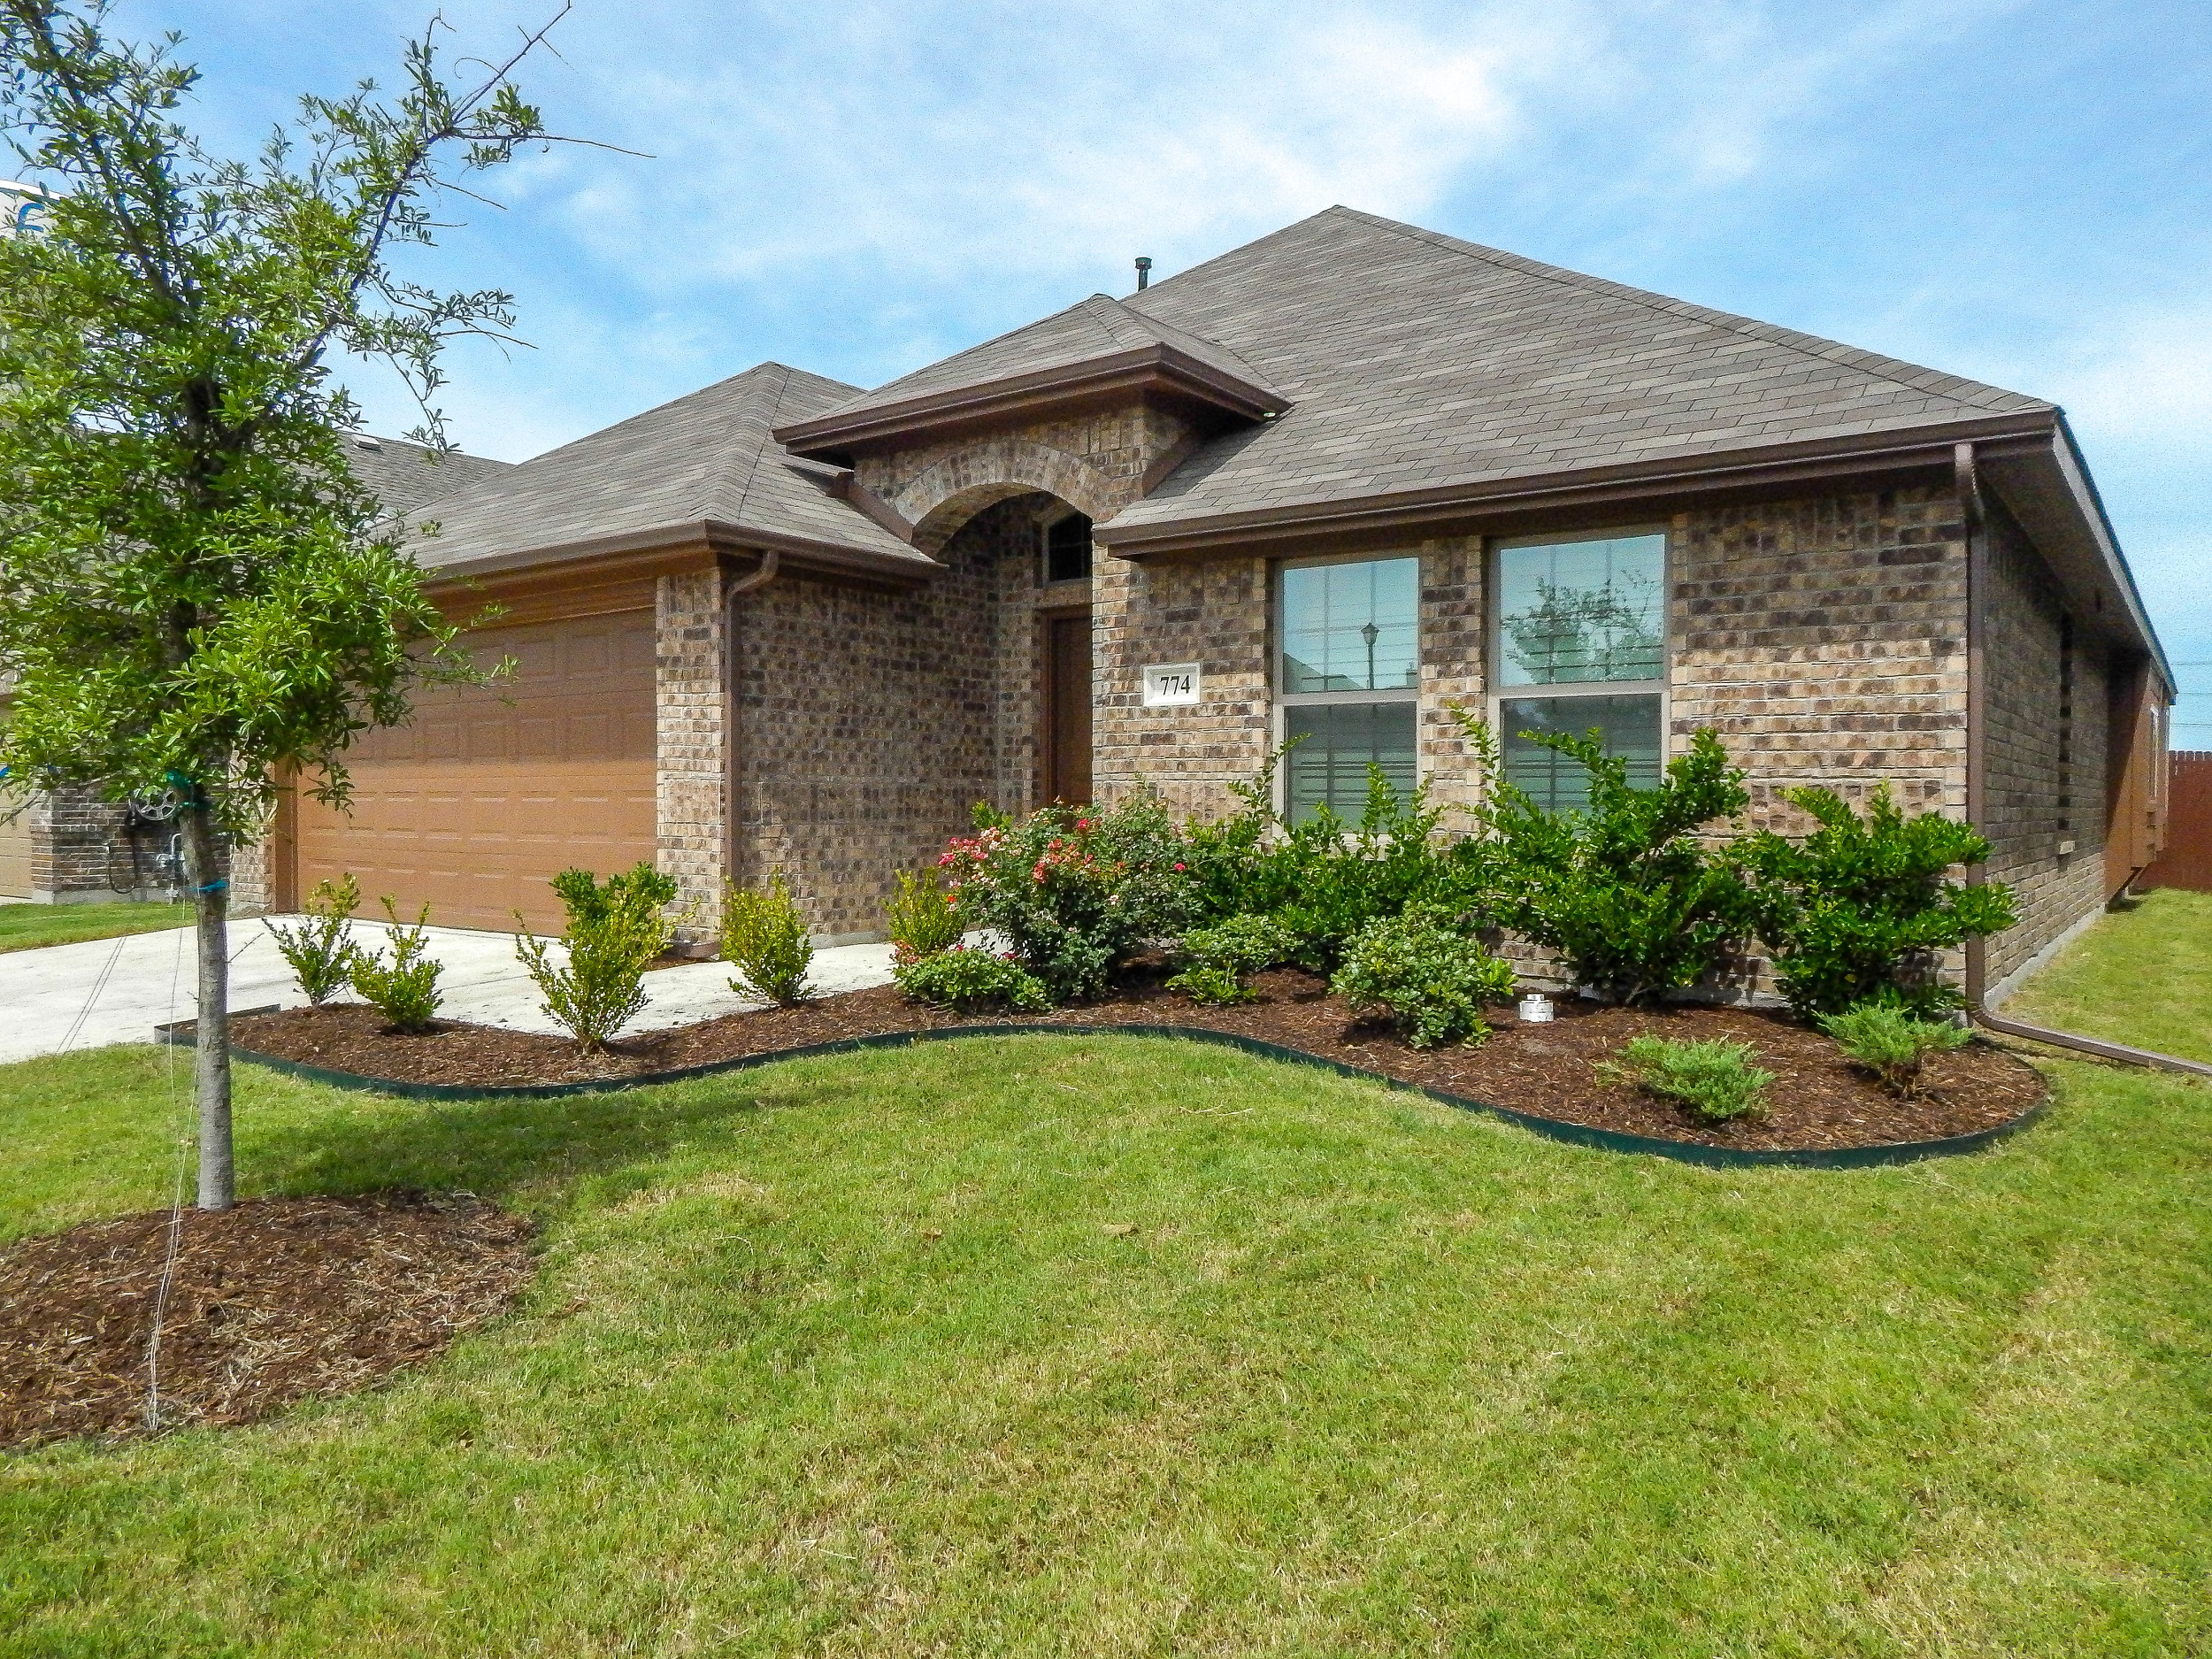 homes for rent in rockwall tx homes for lease in rockwall texas rh dianelipps com